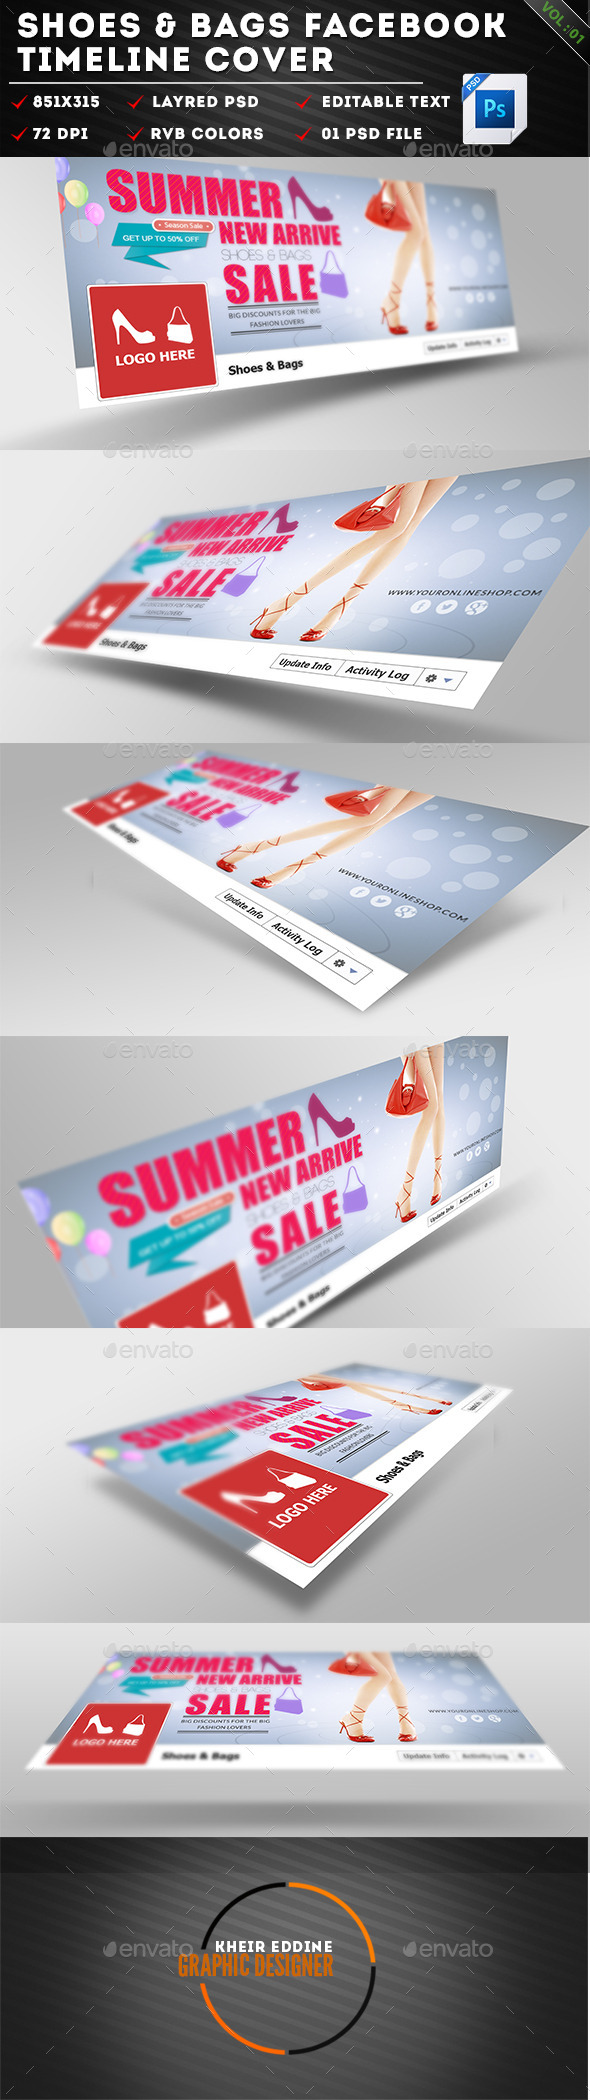 GraphicRiver Shoes & Bags Facebook Timeline Cover Vol 01 11294171